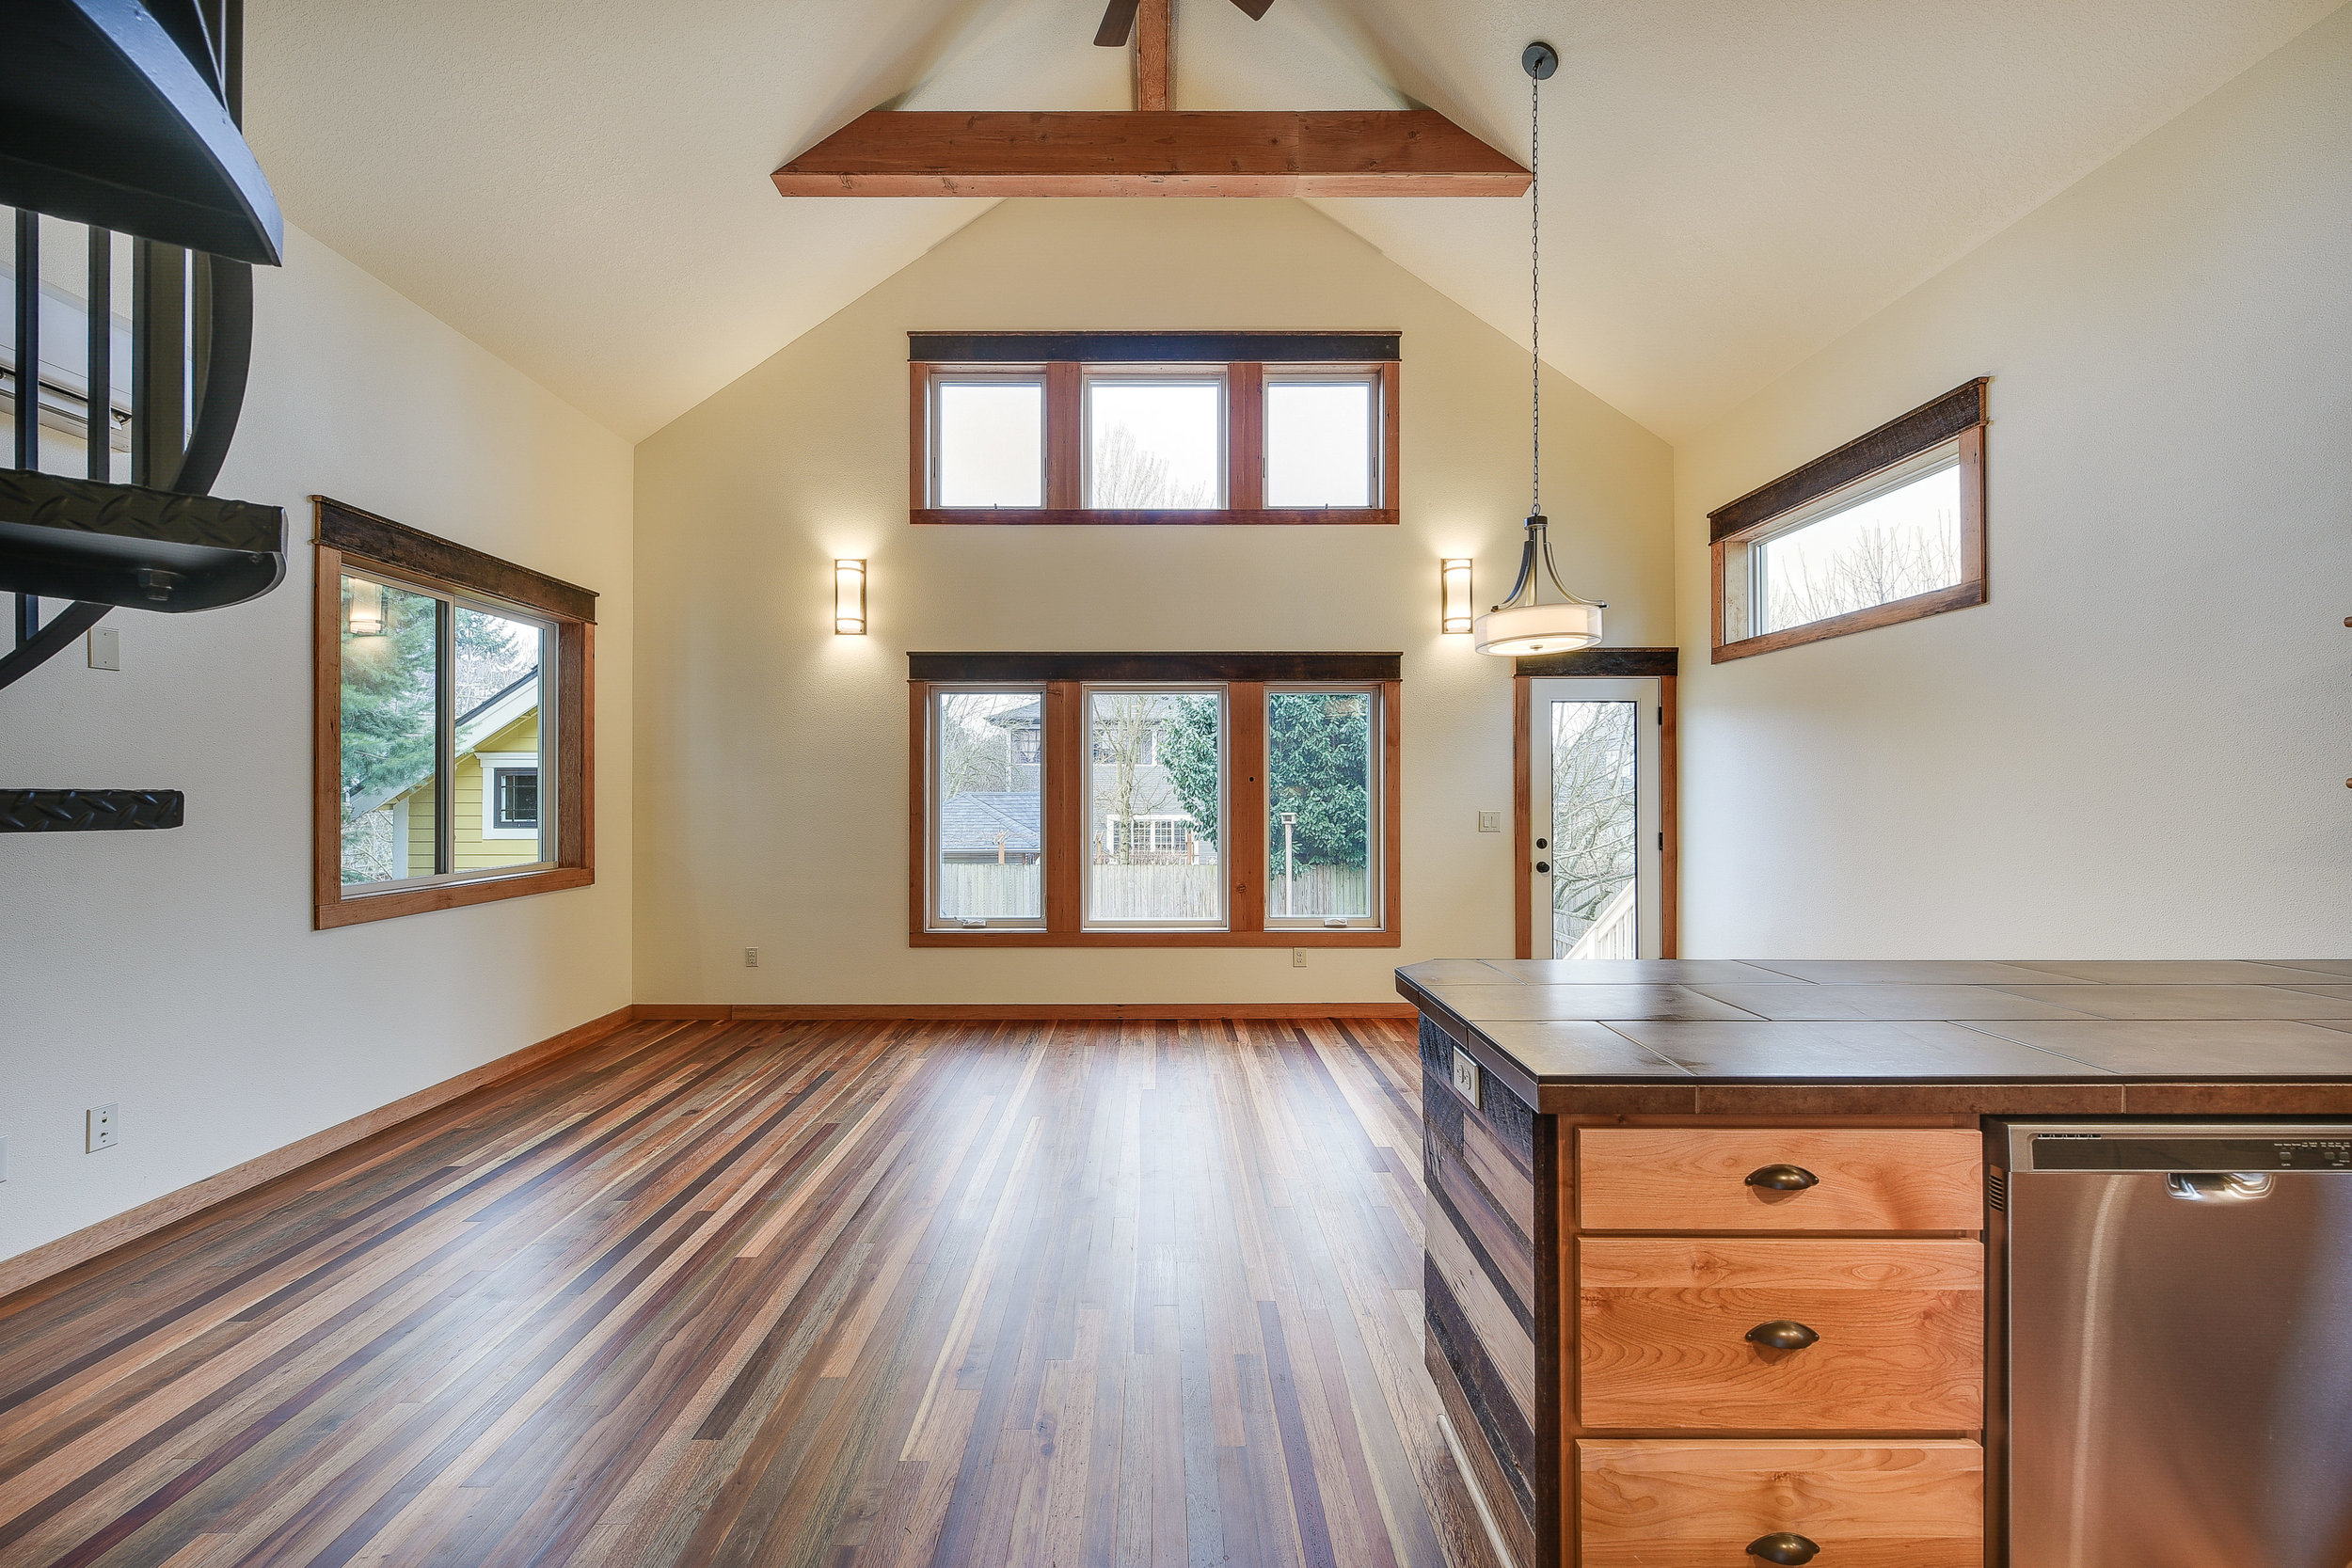 Kitchen & dining room with reclaimed wood floors & trim